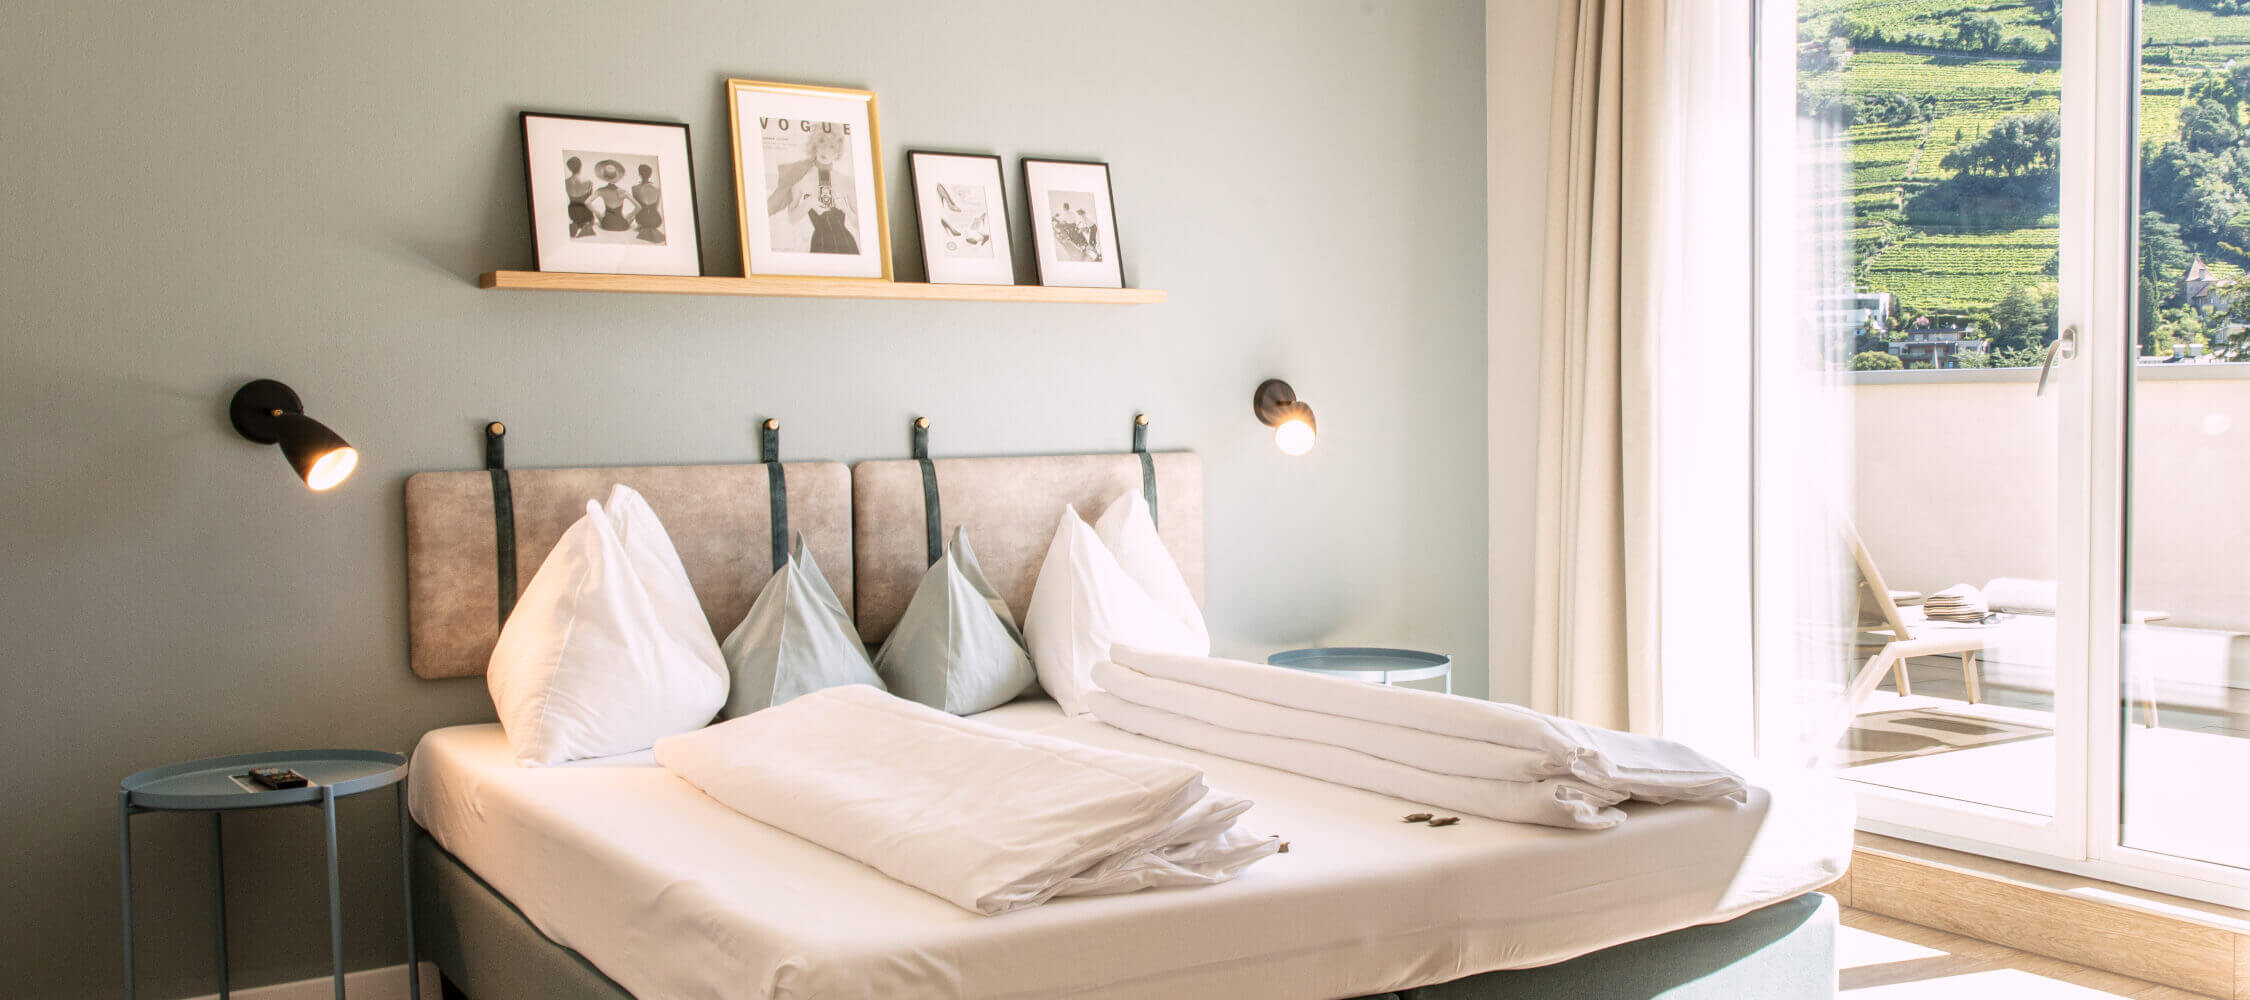 City_Hotel_Merano_Suite_Panoramic_Schlafzimmer_BeatricePilotto_3T1A1730_2250x1000